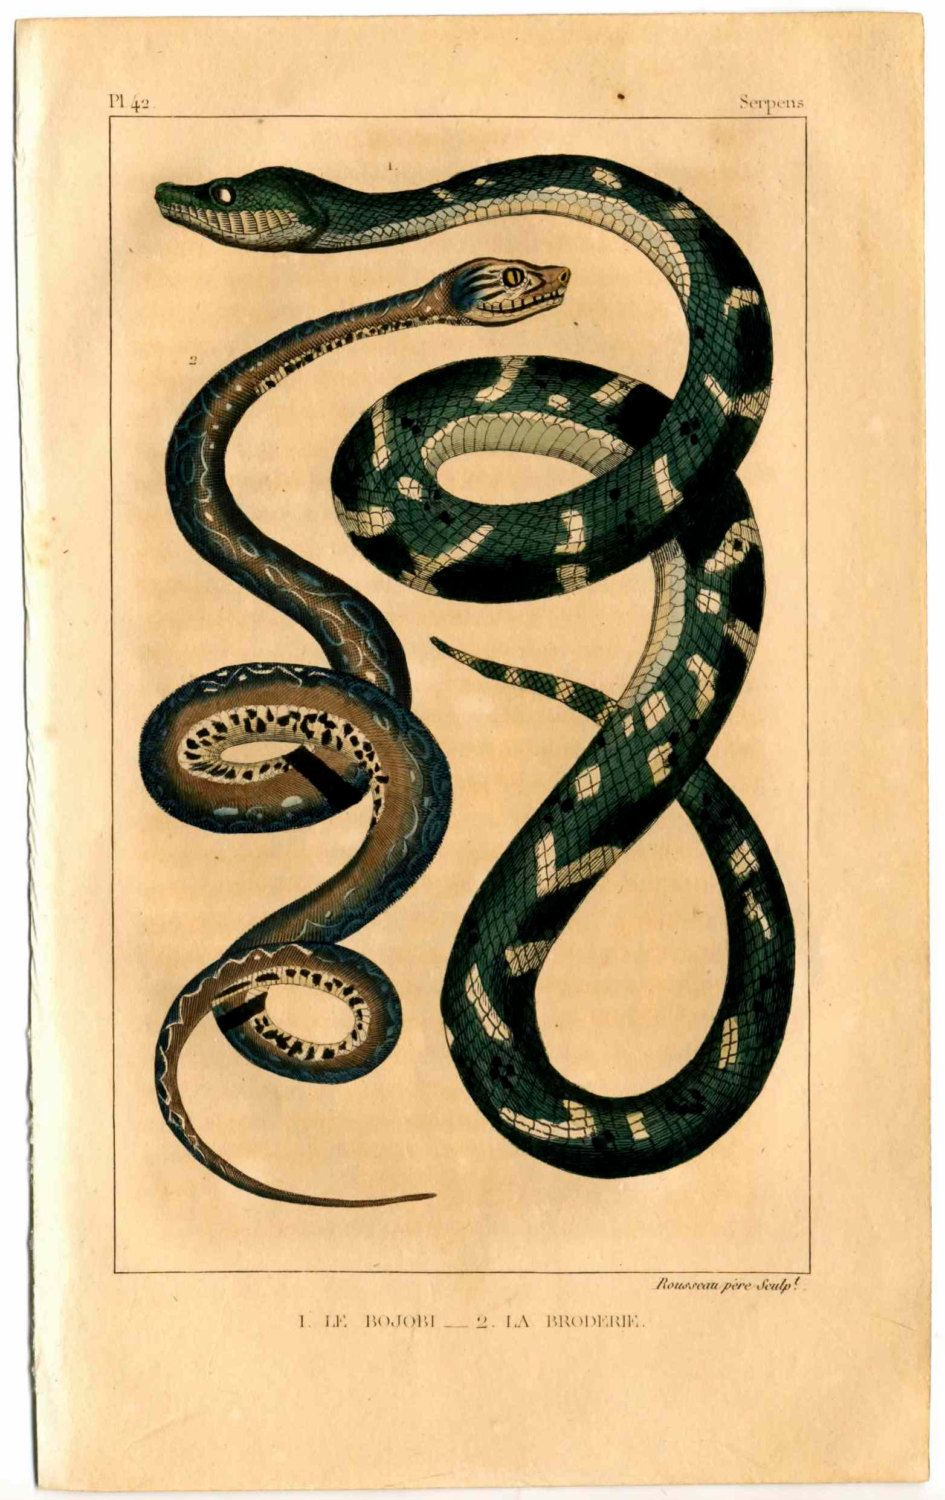 In The Keen Celtic Mind Snake Symbolic Meaning Of Transformation Came From Shedding Its Skin Physical Evidence Leaving Form Behind Casting